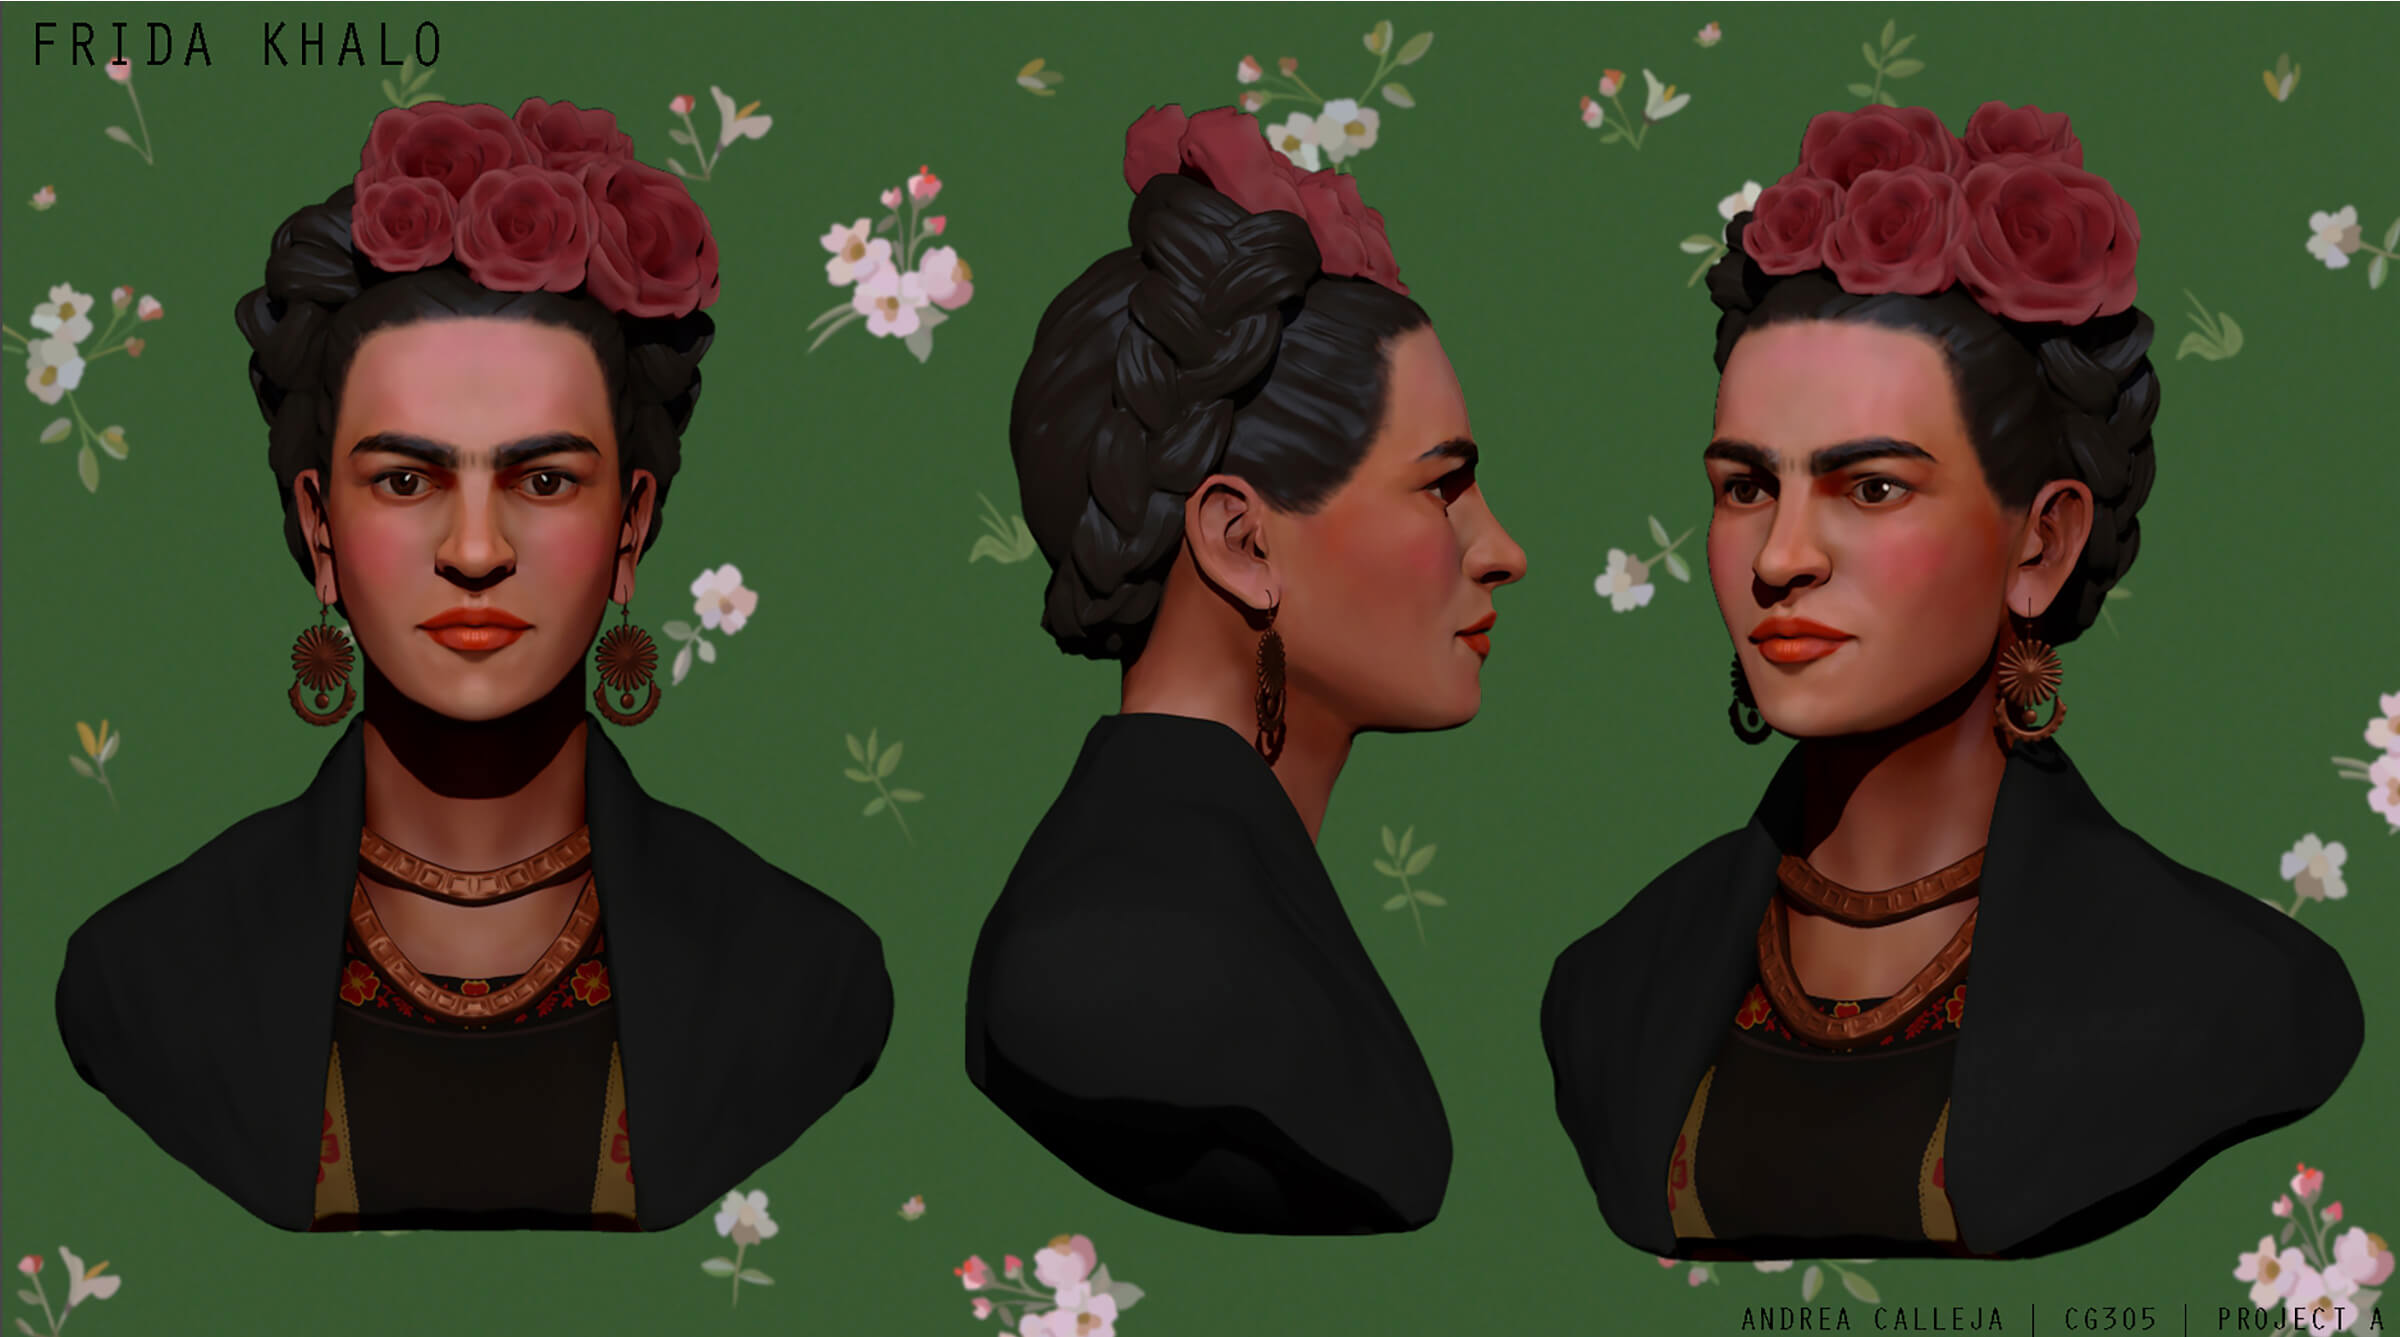 computer-generated 3D portrait of Frida Kahlo with 3 views: head-on, profile, and partial profile